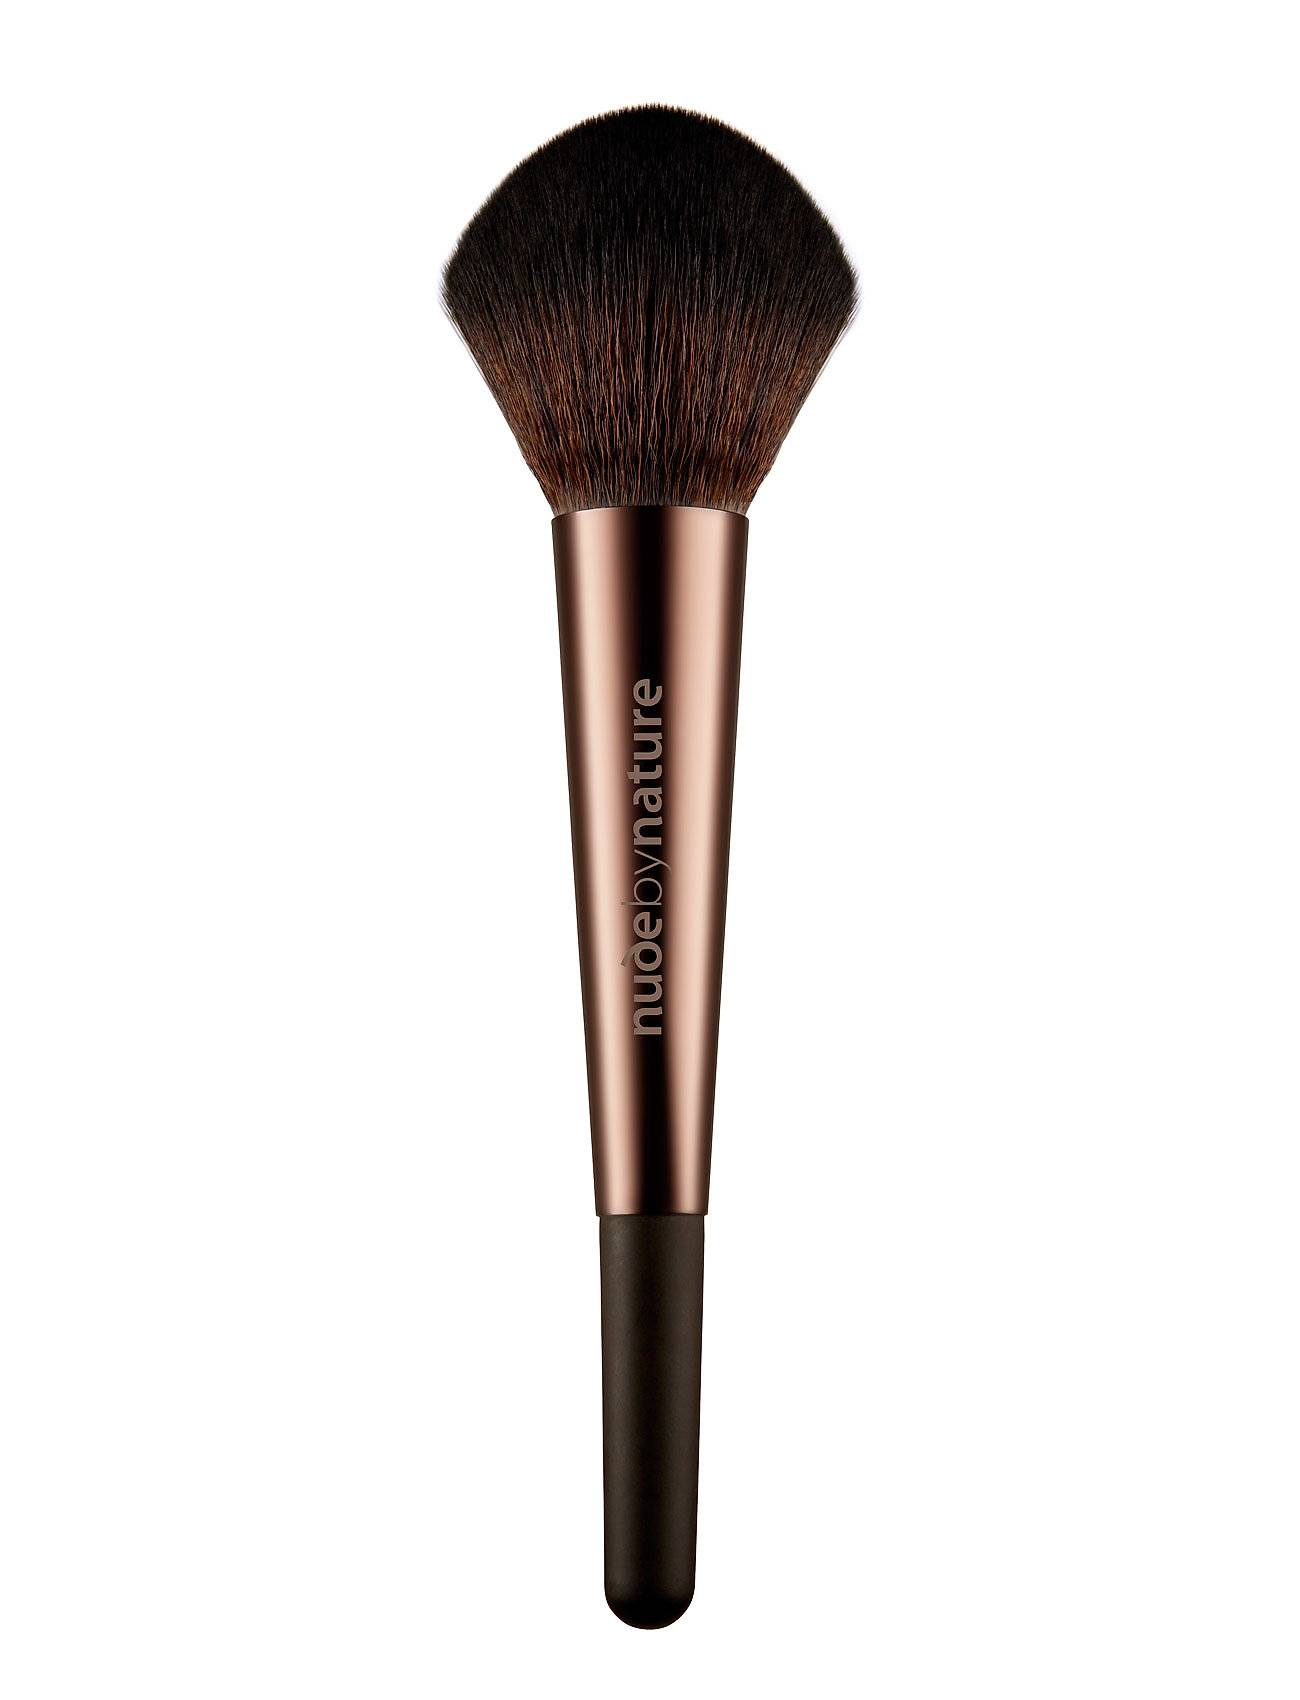 Nude by Nature Brushes 05 Finishingbrush Beauty WOMEN Makeup Makeup Brushes Face Brushes Nude Nude By Nature